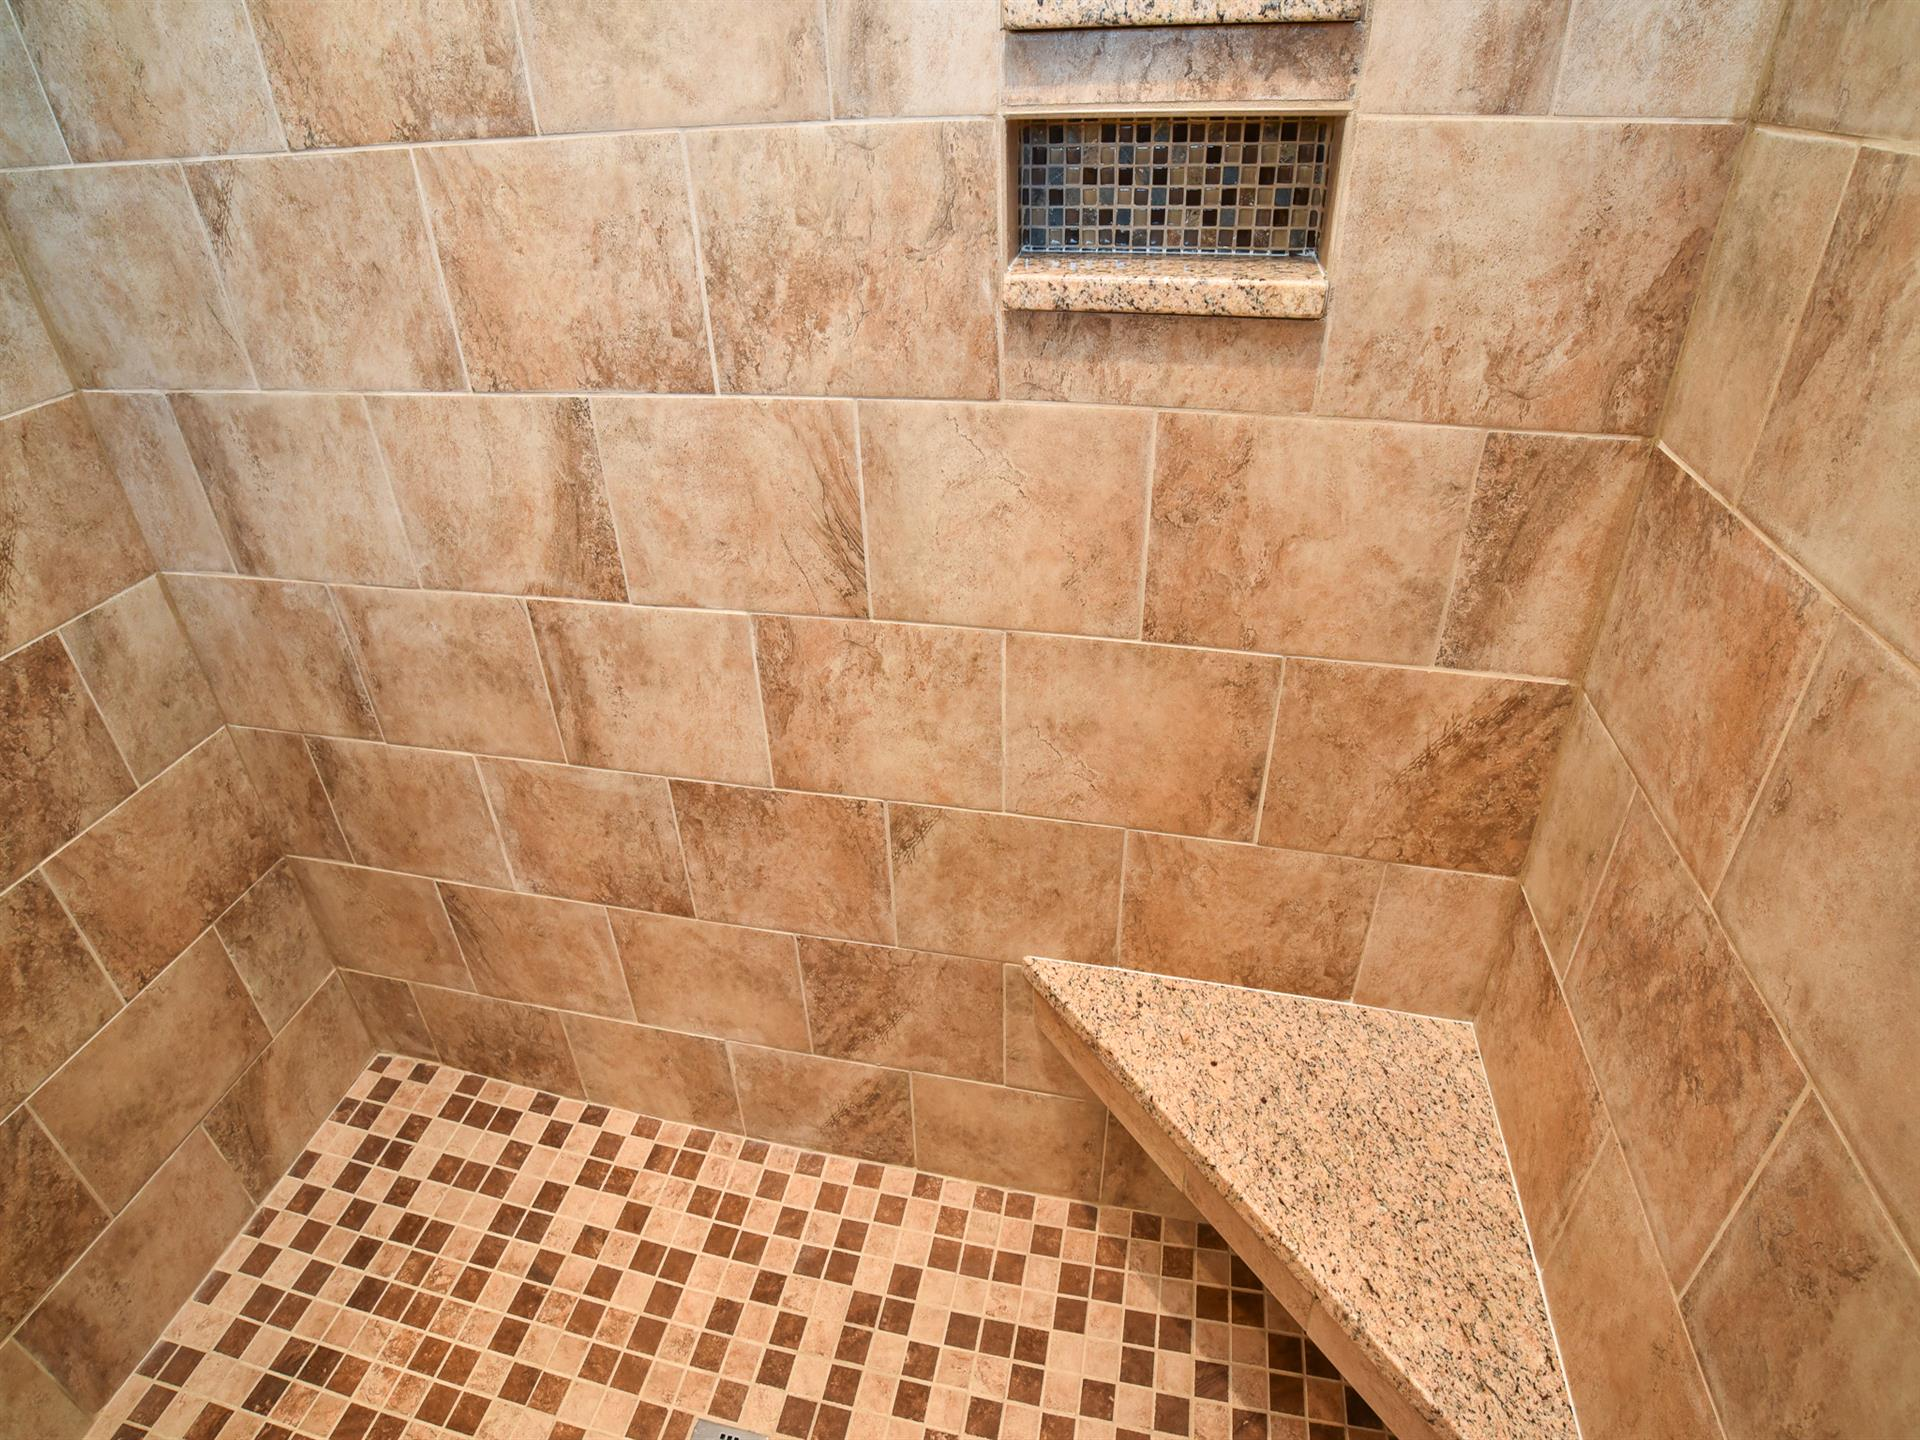 floor of the inside of the shower